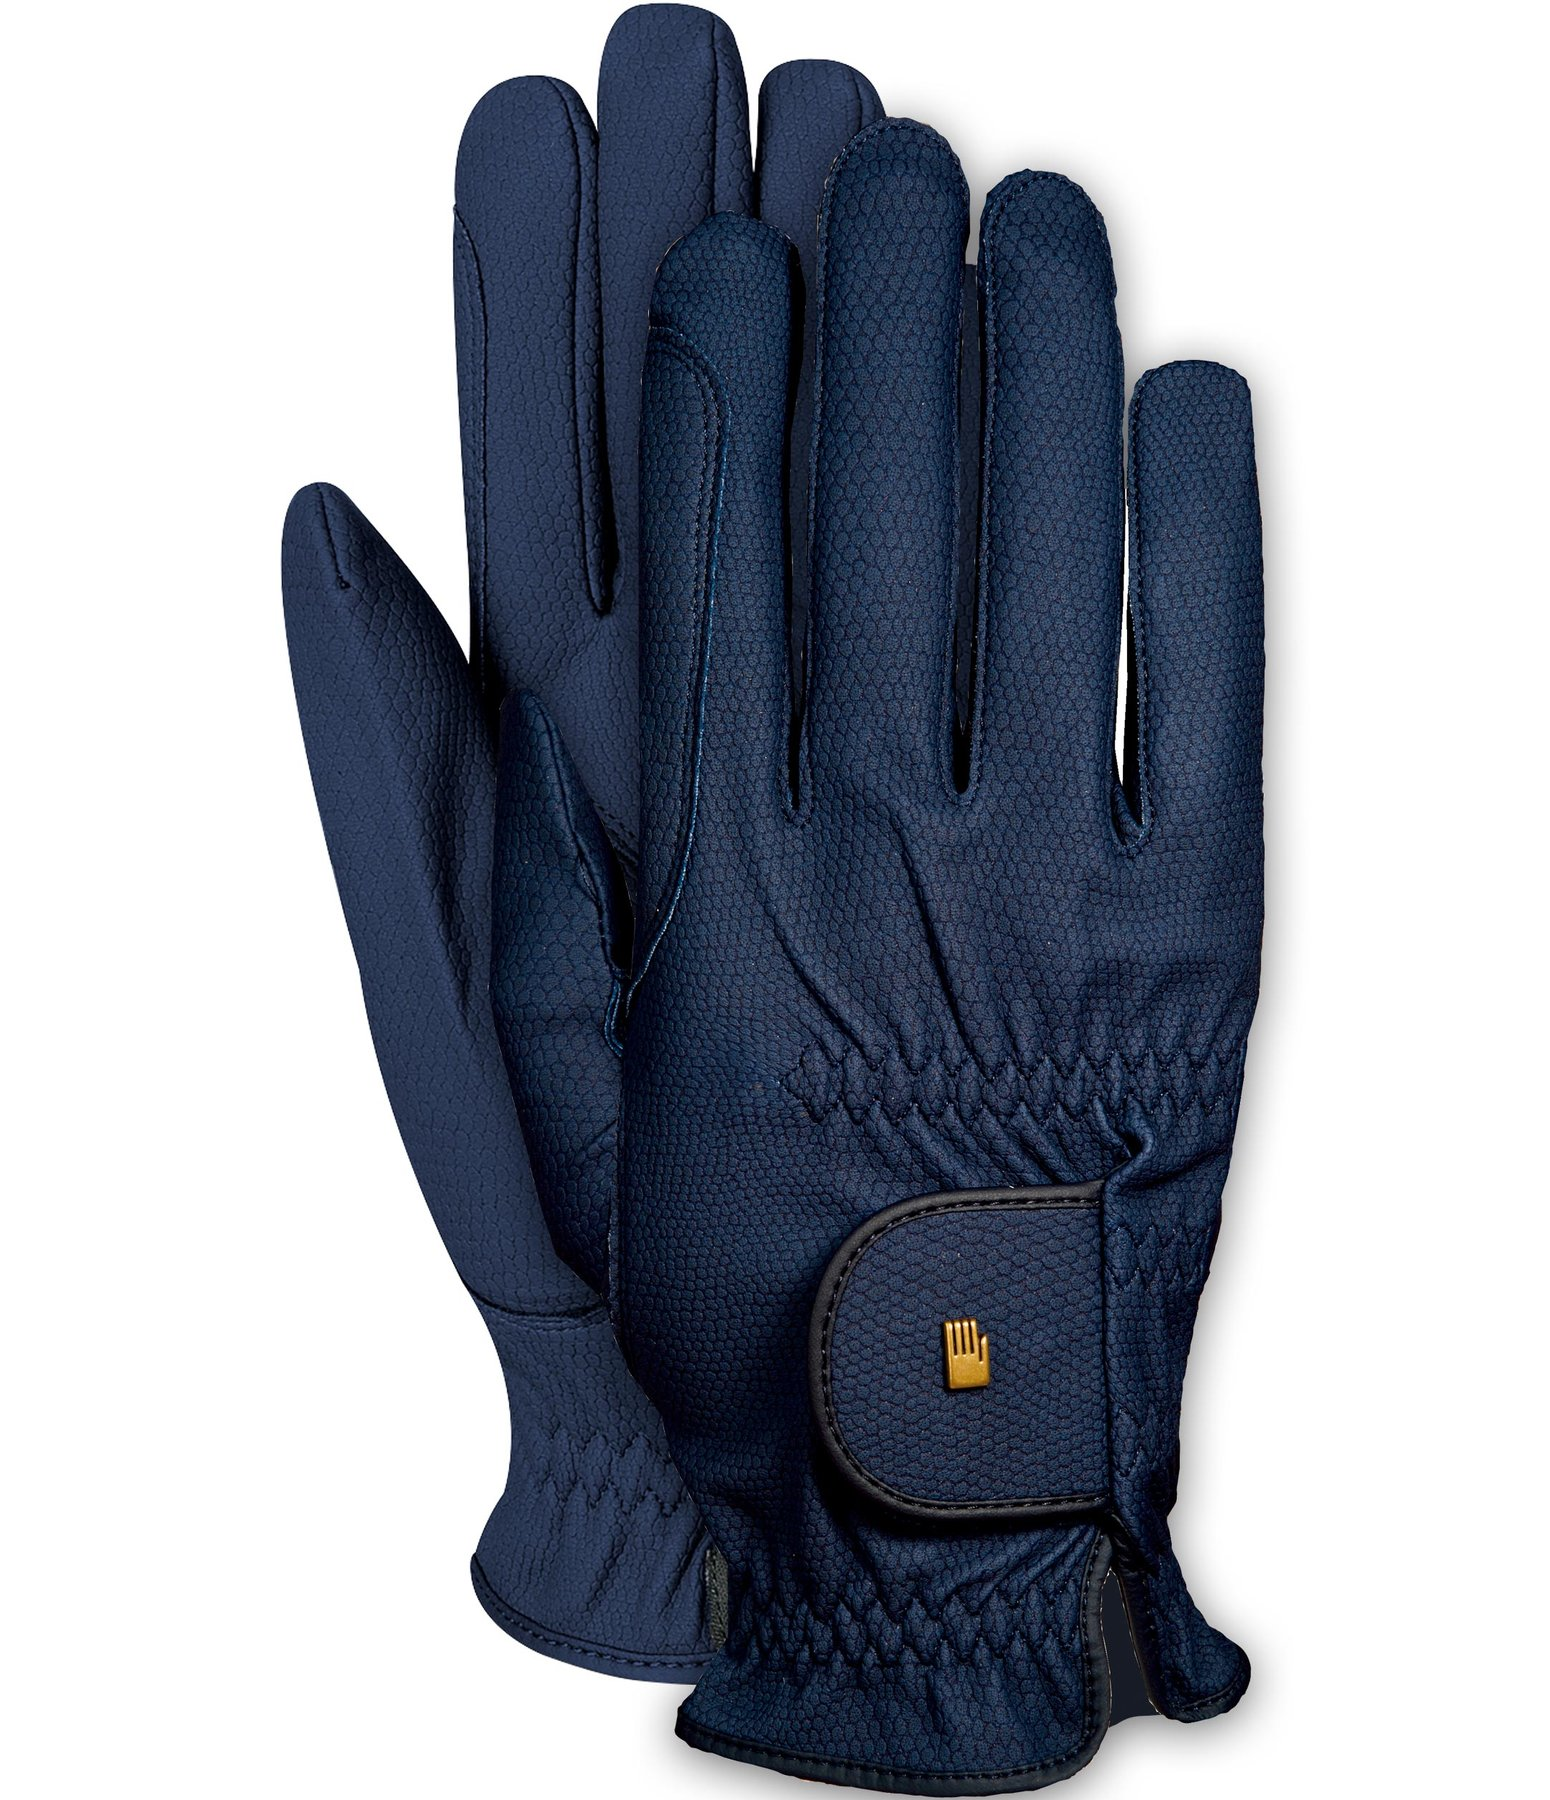 Winter Riding Gloves ROECK-GRIP - Winter Riding Gloves